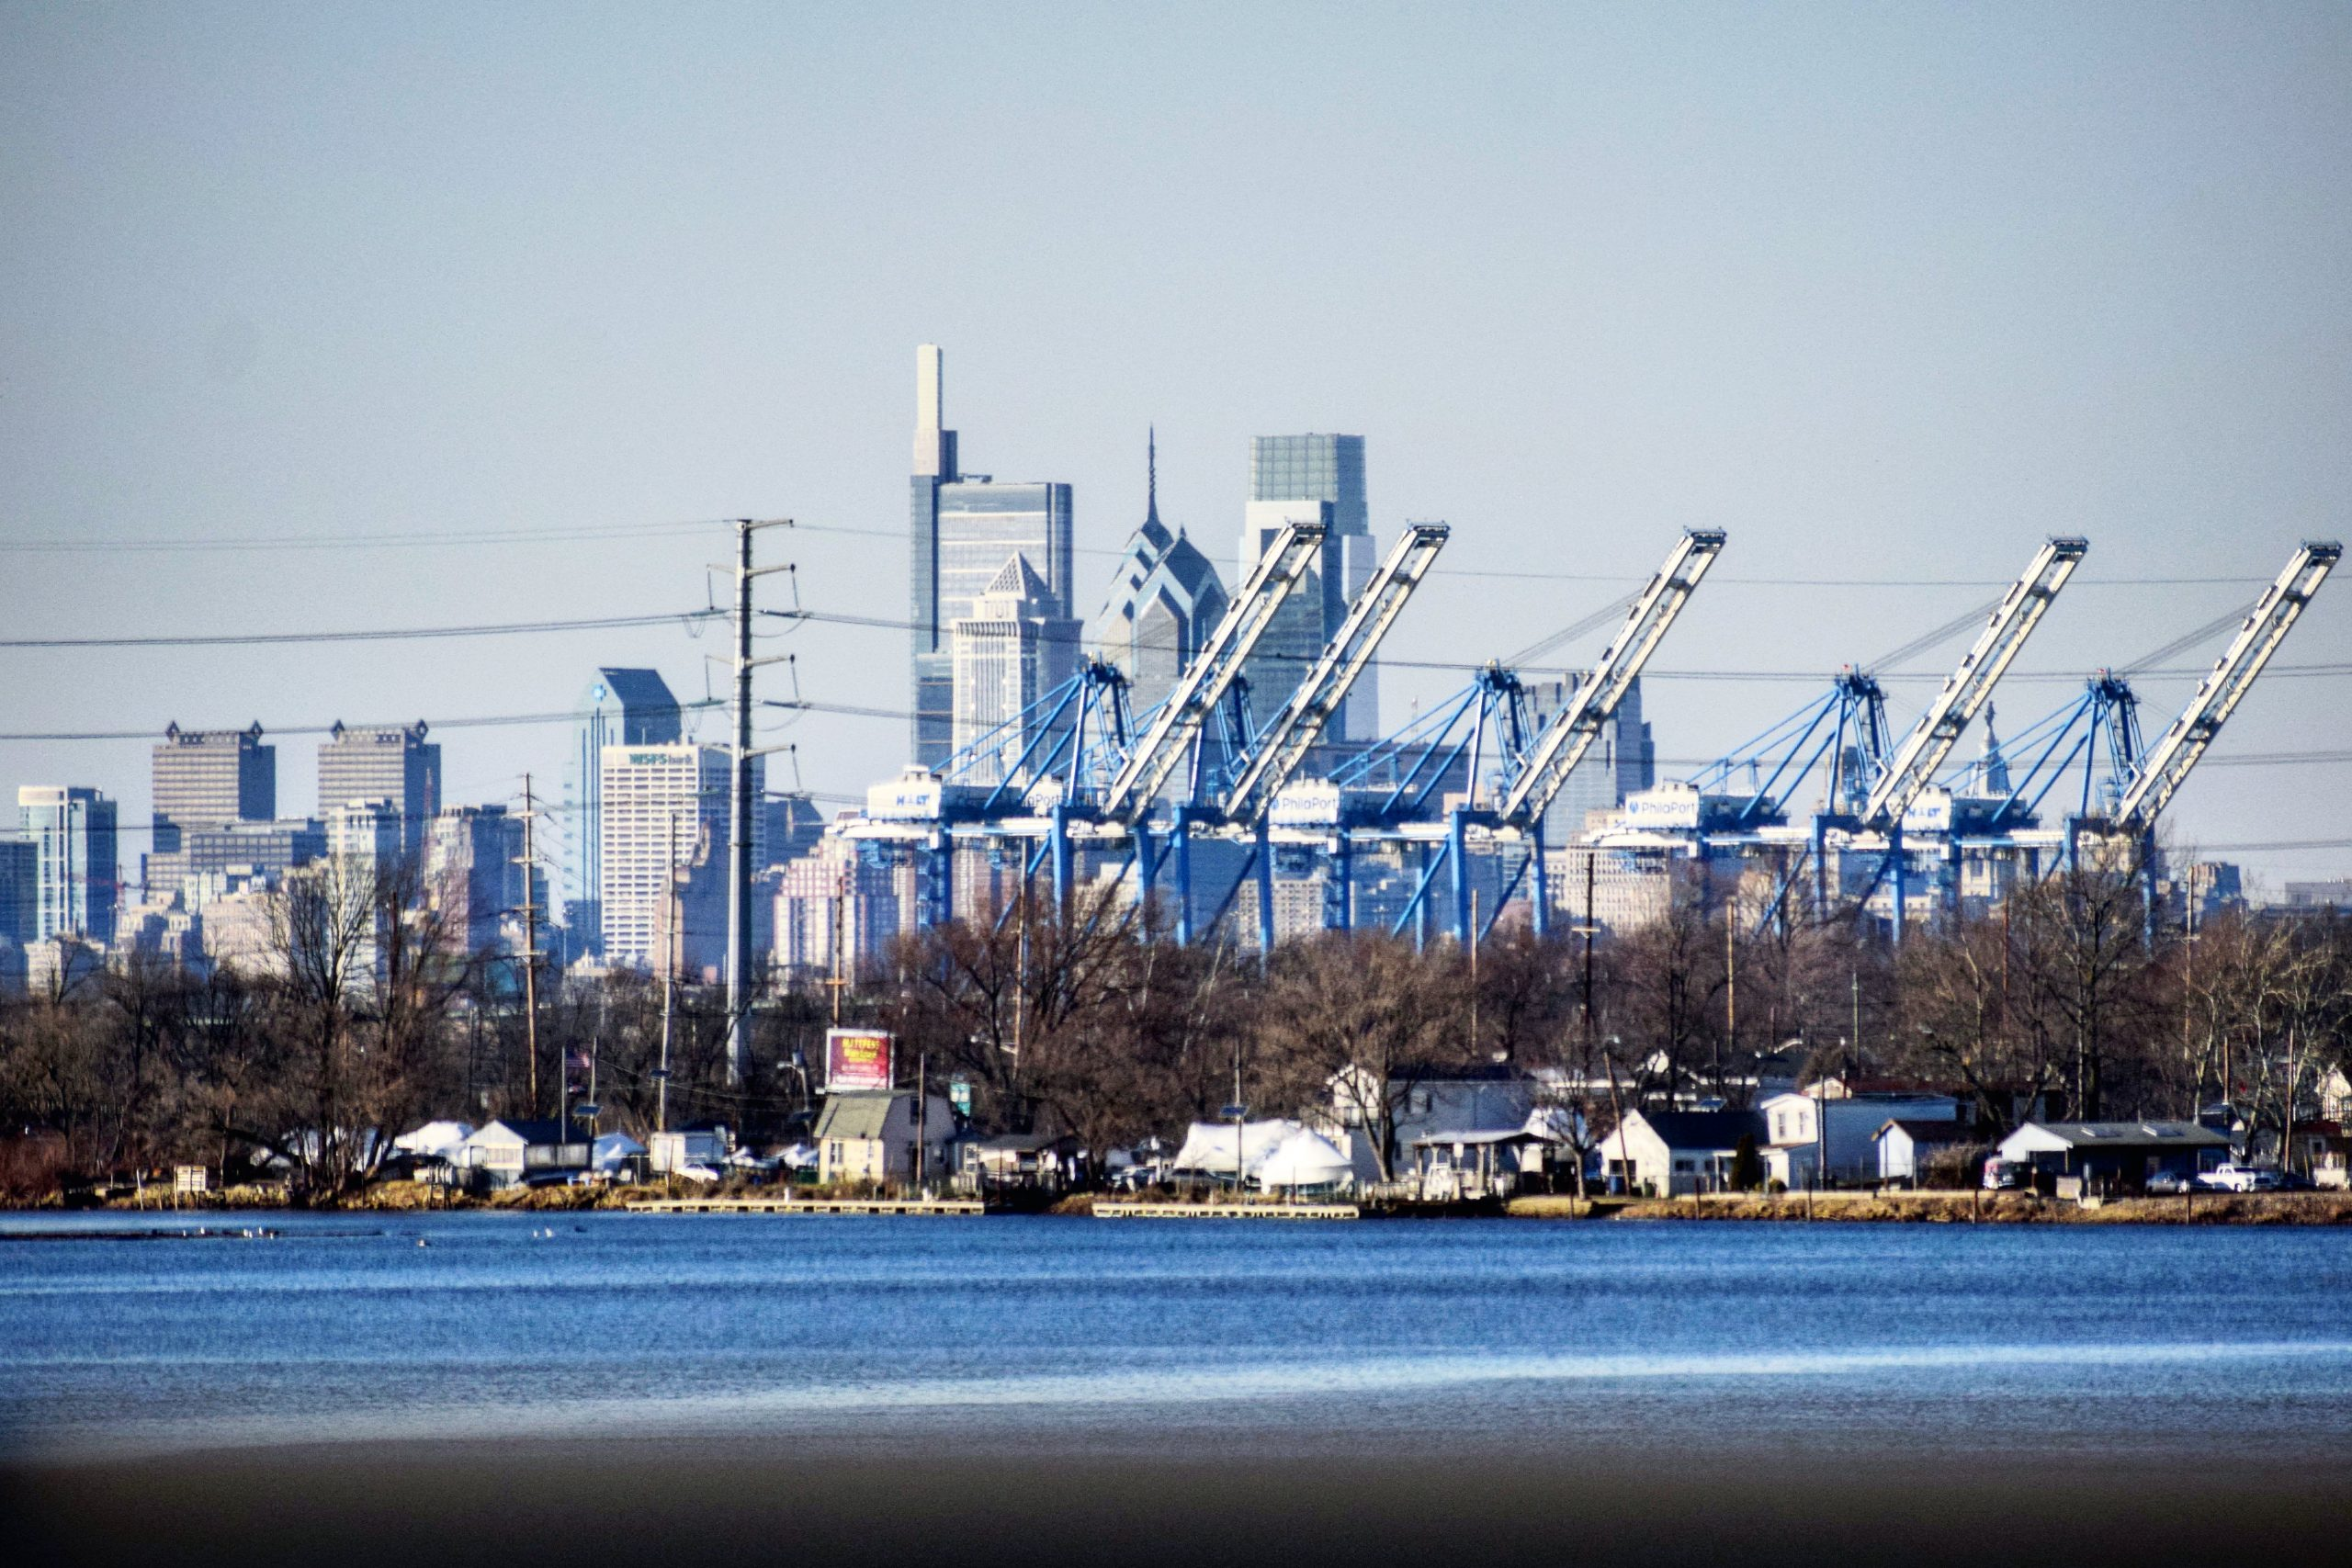 PhilaPort and the skyline from New Jersey. Photo by Thomas Koloski